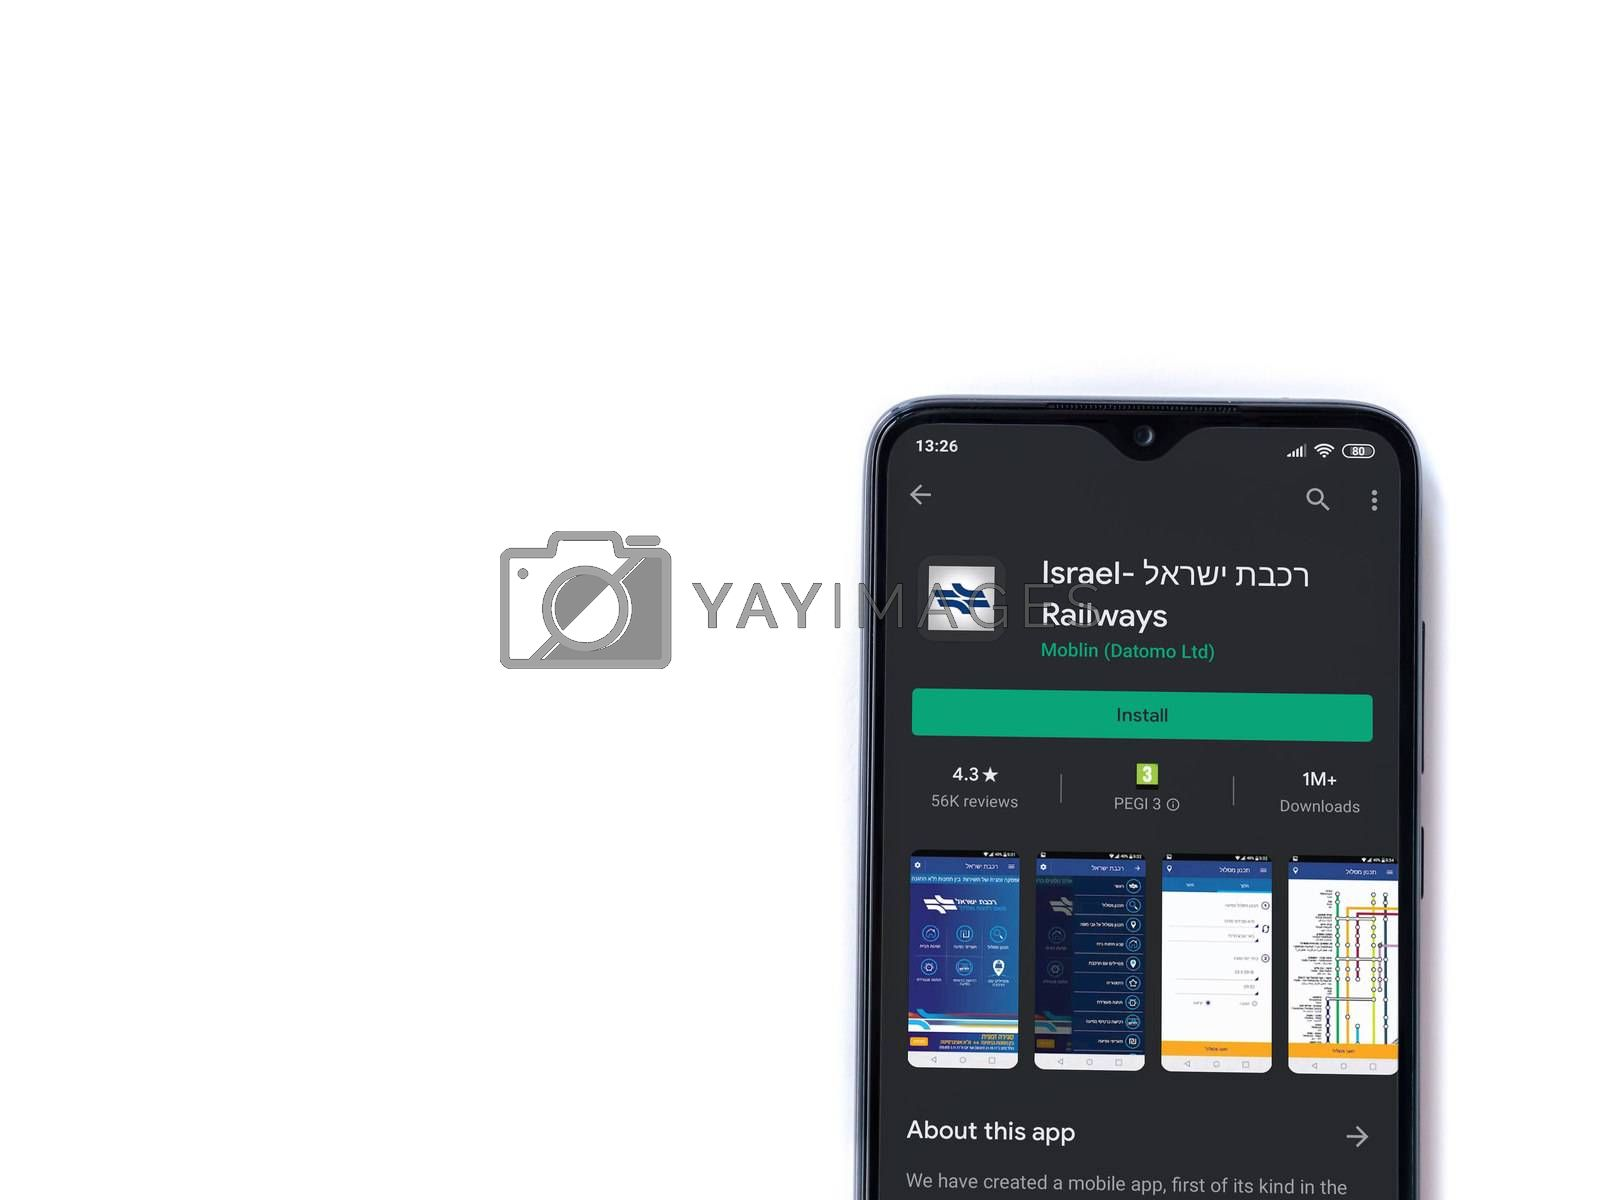 Lod, Israel - July 8, 2020: Israel Railways app play store page on the display of a black mobile smartphone isolated on white background. Top view flat lay with copy space.